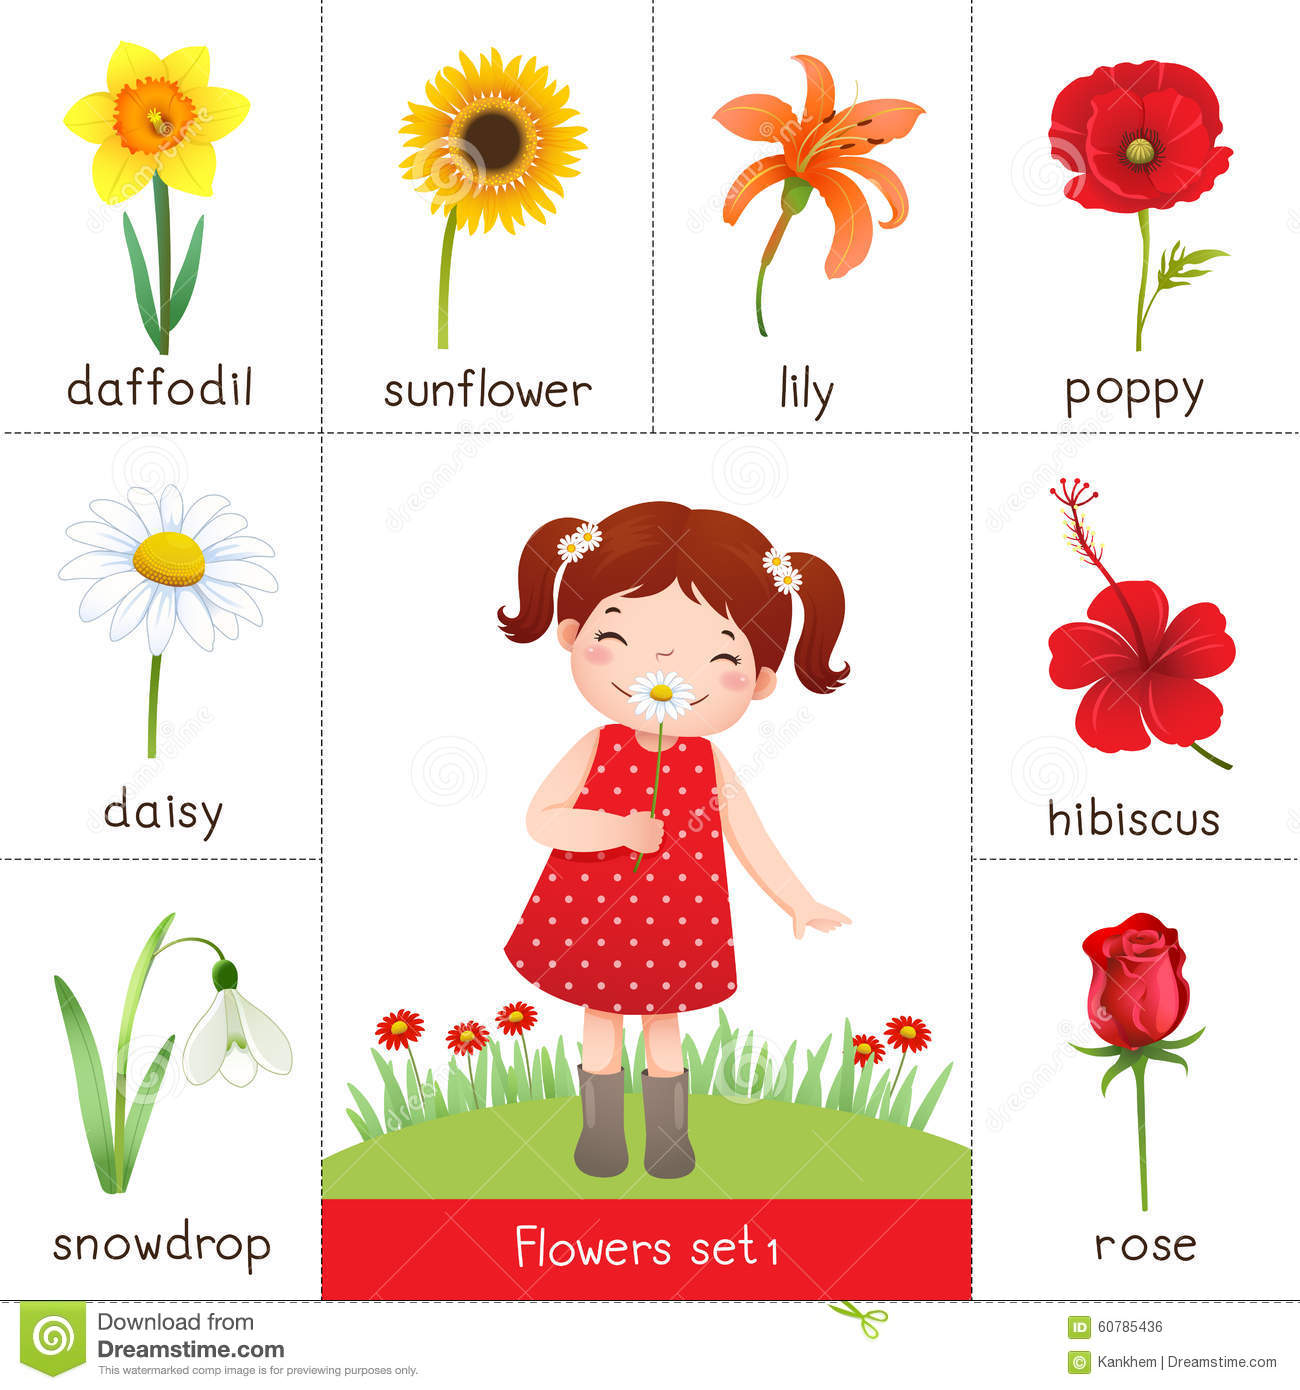 Printable Flash Card For Flowers And Little Girl Smelling